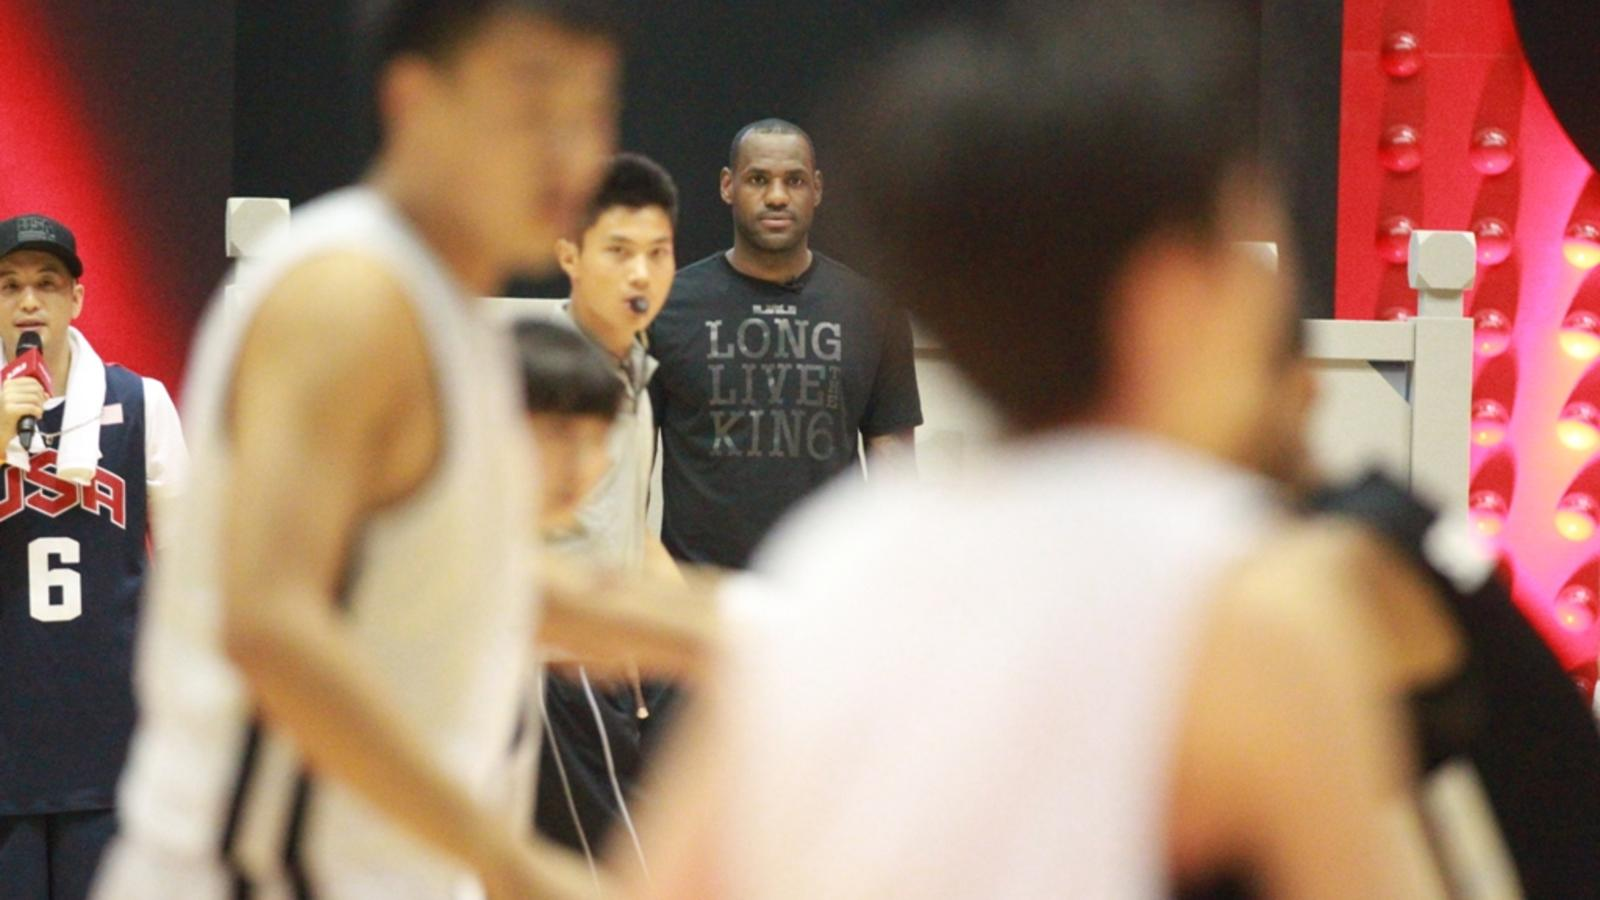 LeBron_BJ_coaching